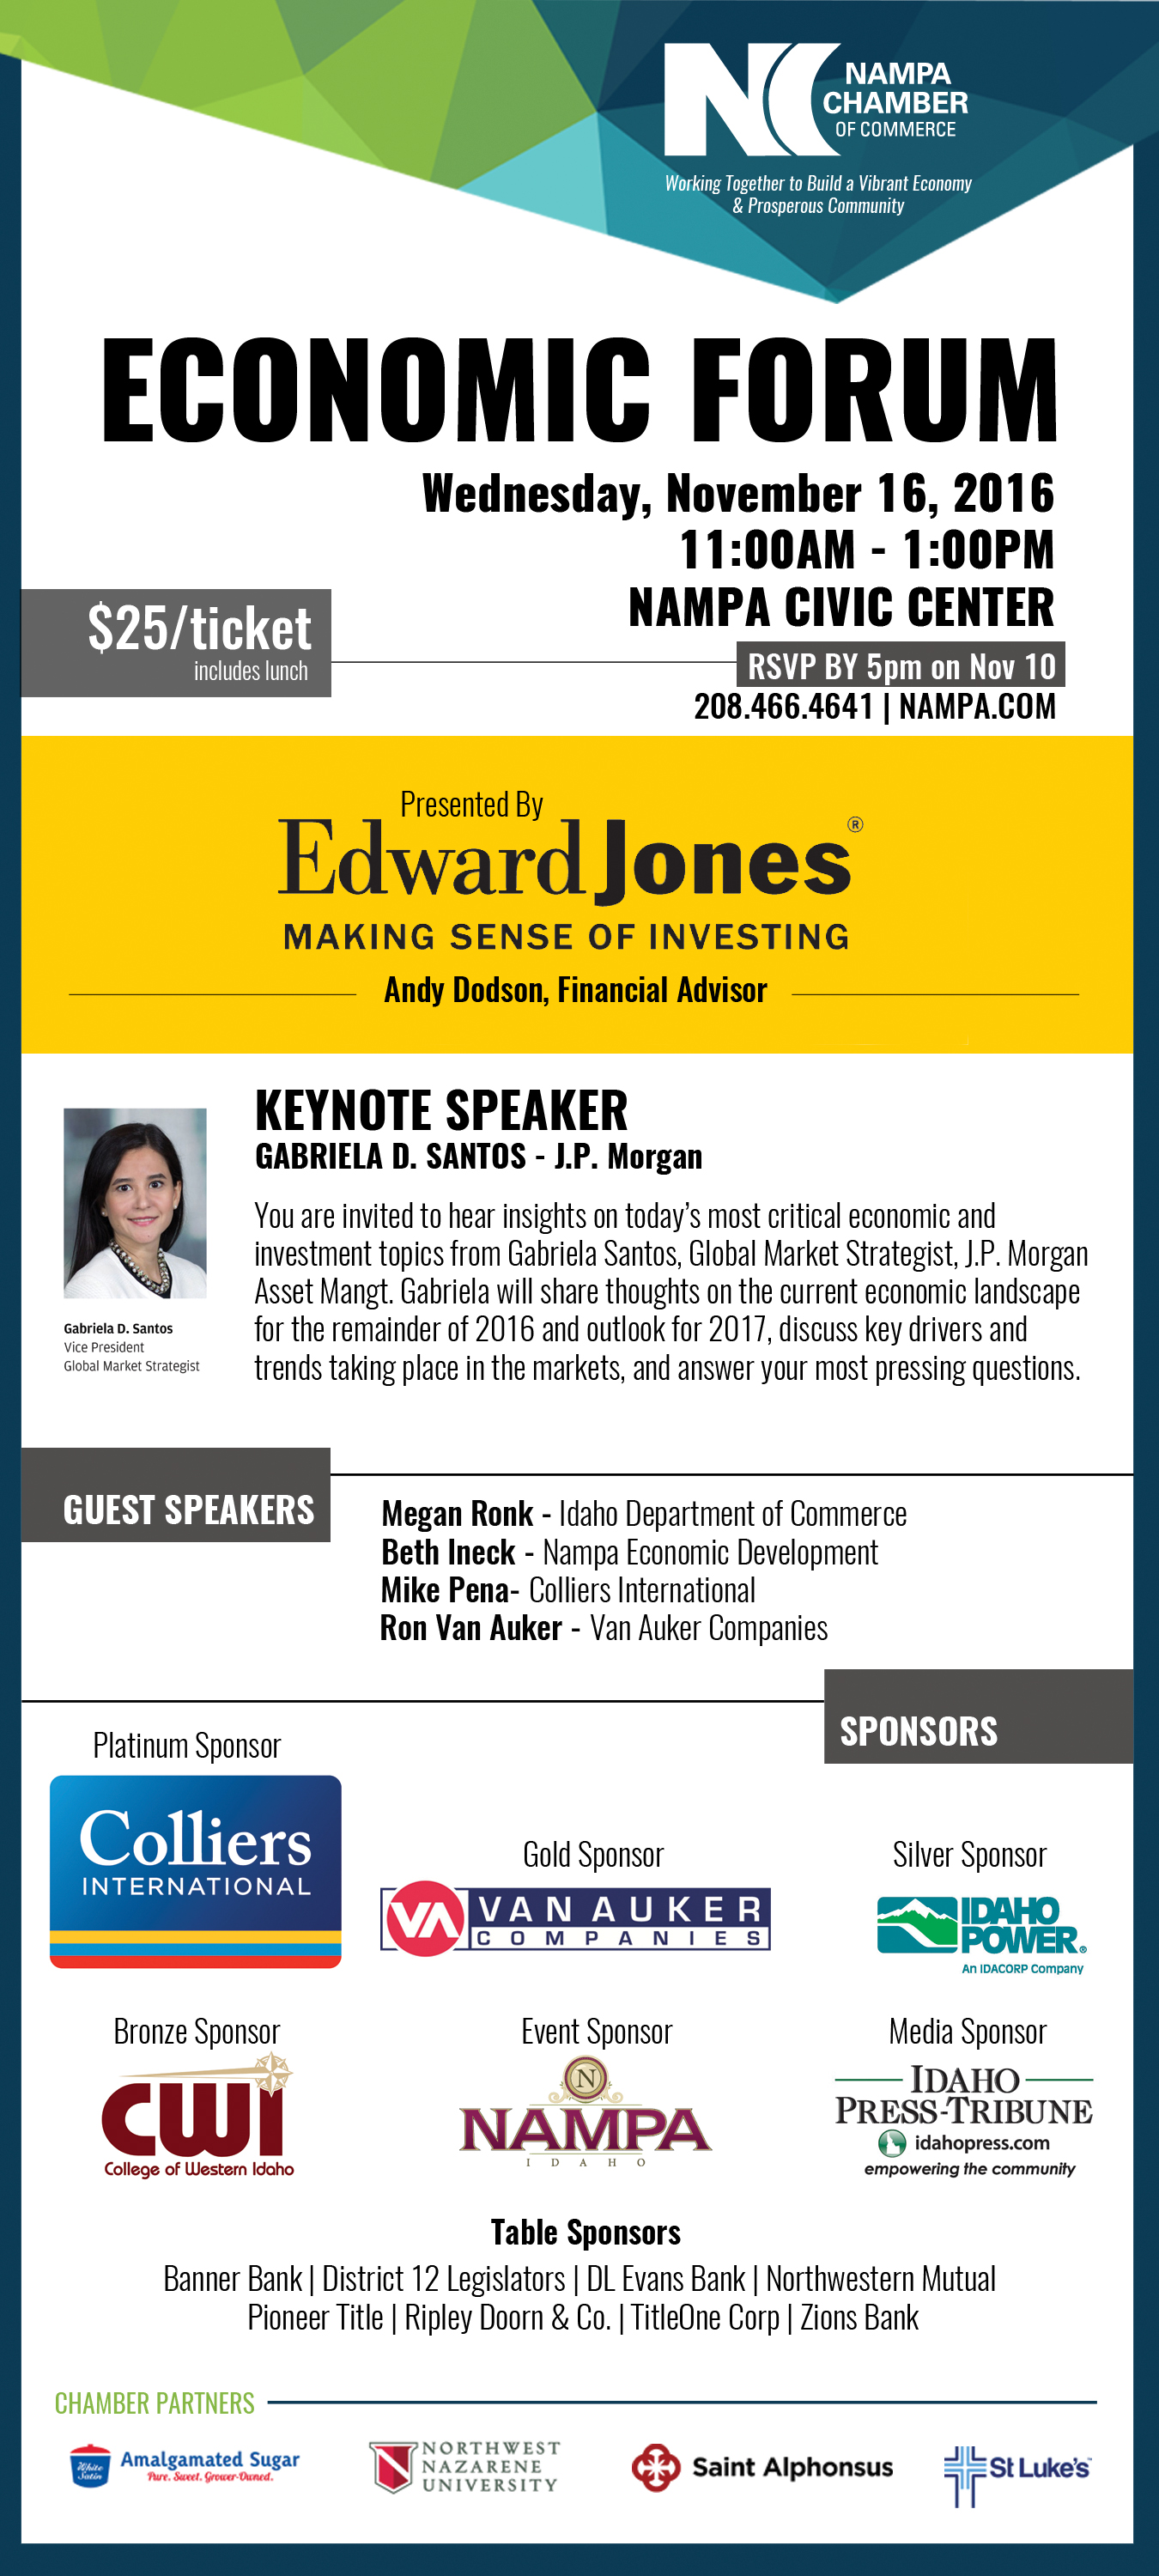 economic forum business in nampa treasure valley edward jones